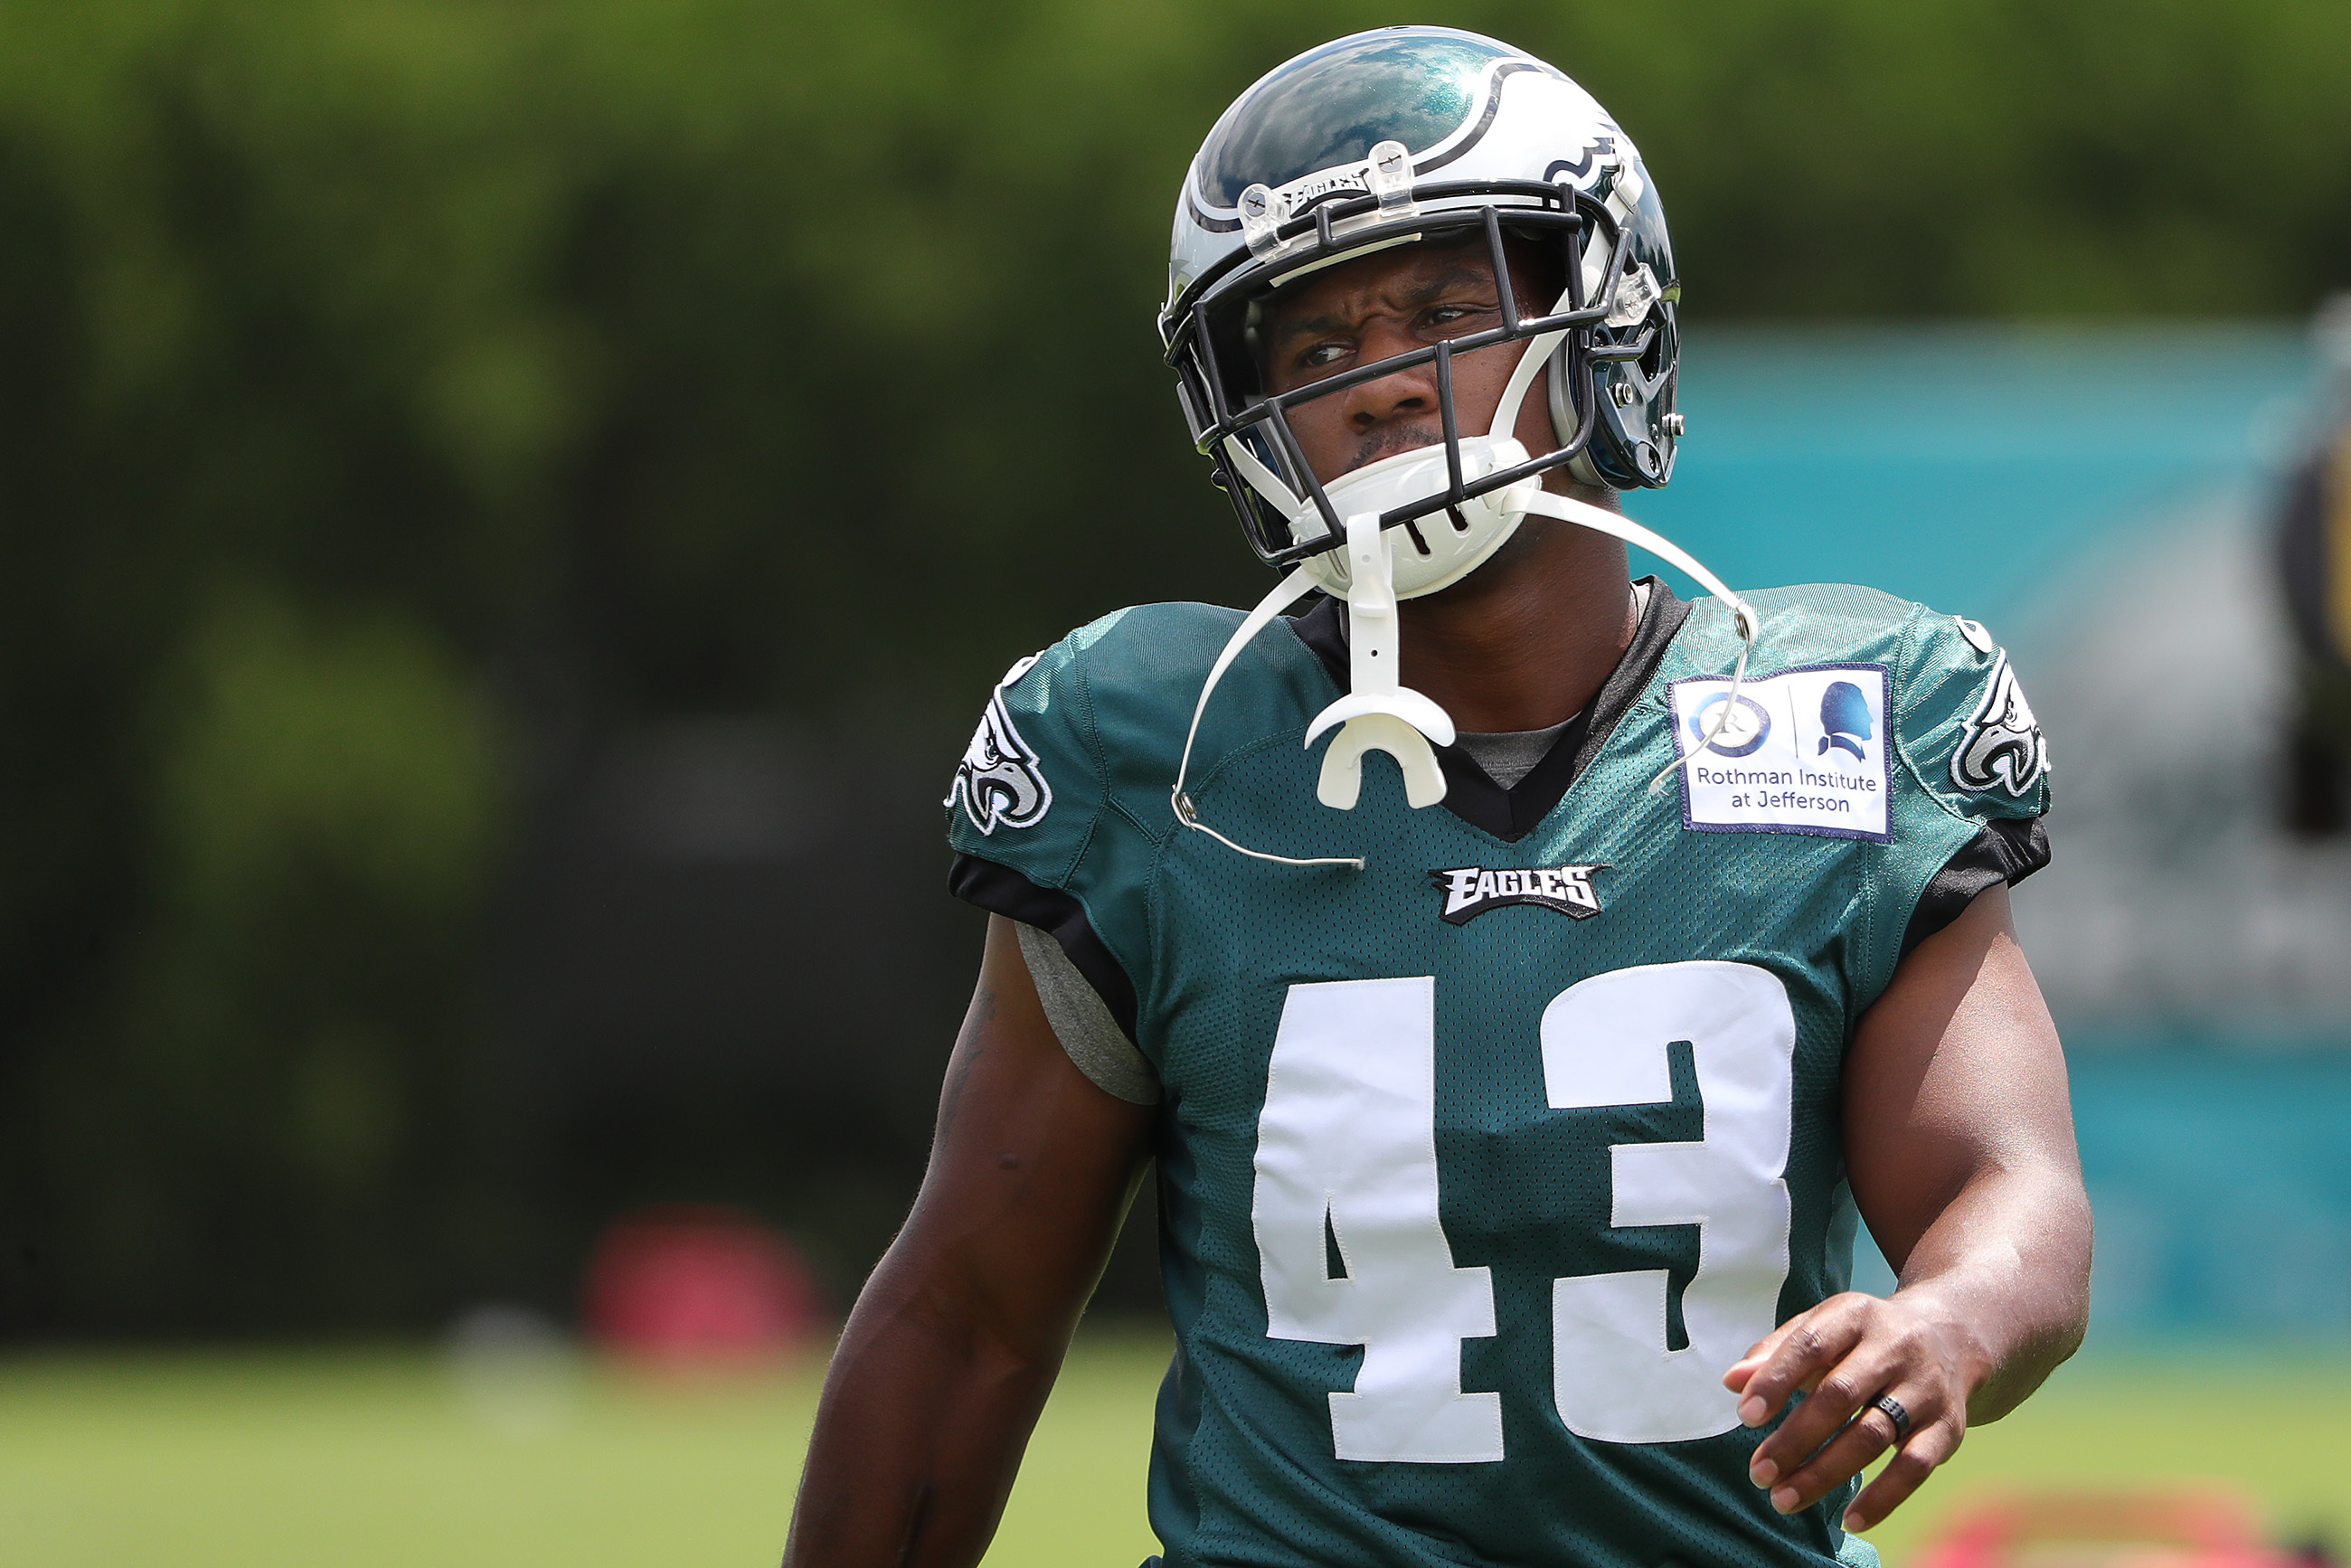 Darren Sproles could be the spark the Eagles´ offense needs, but can they count on it enough to pass on adding firepower at the deadline?